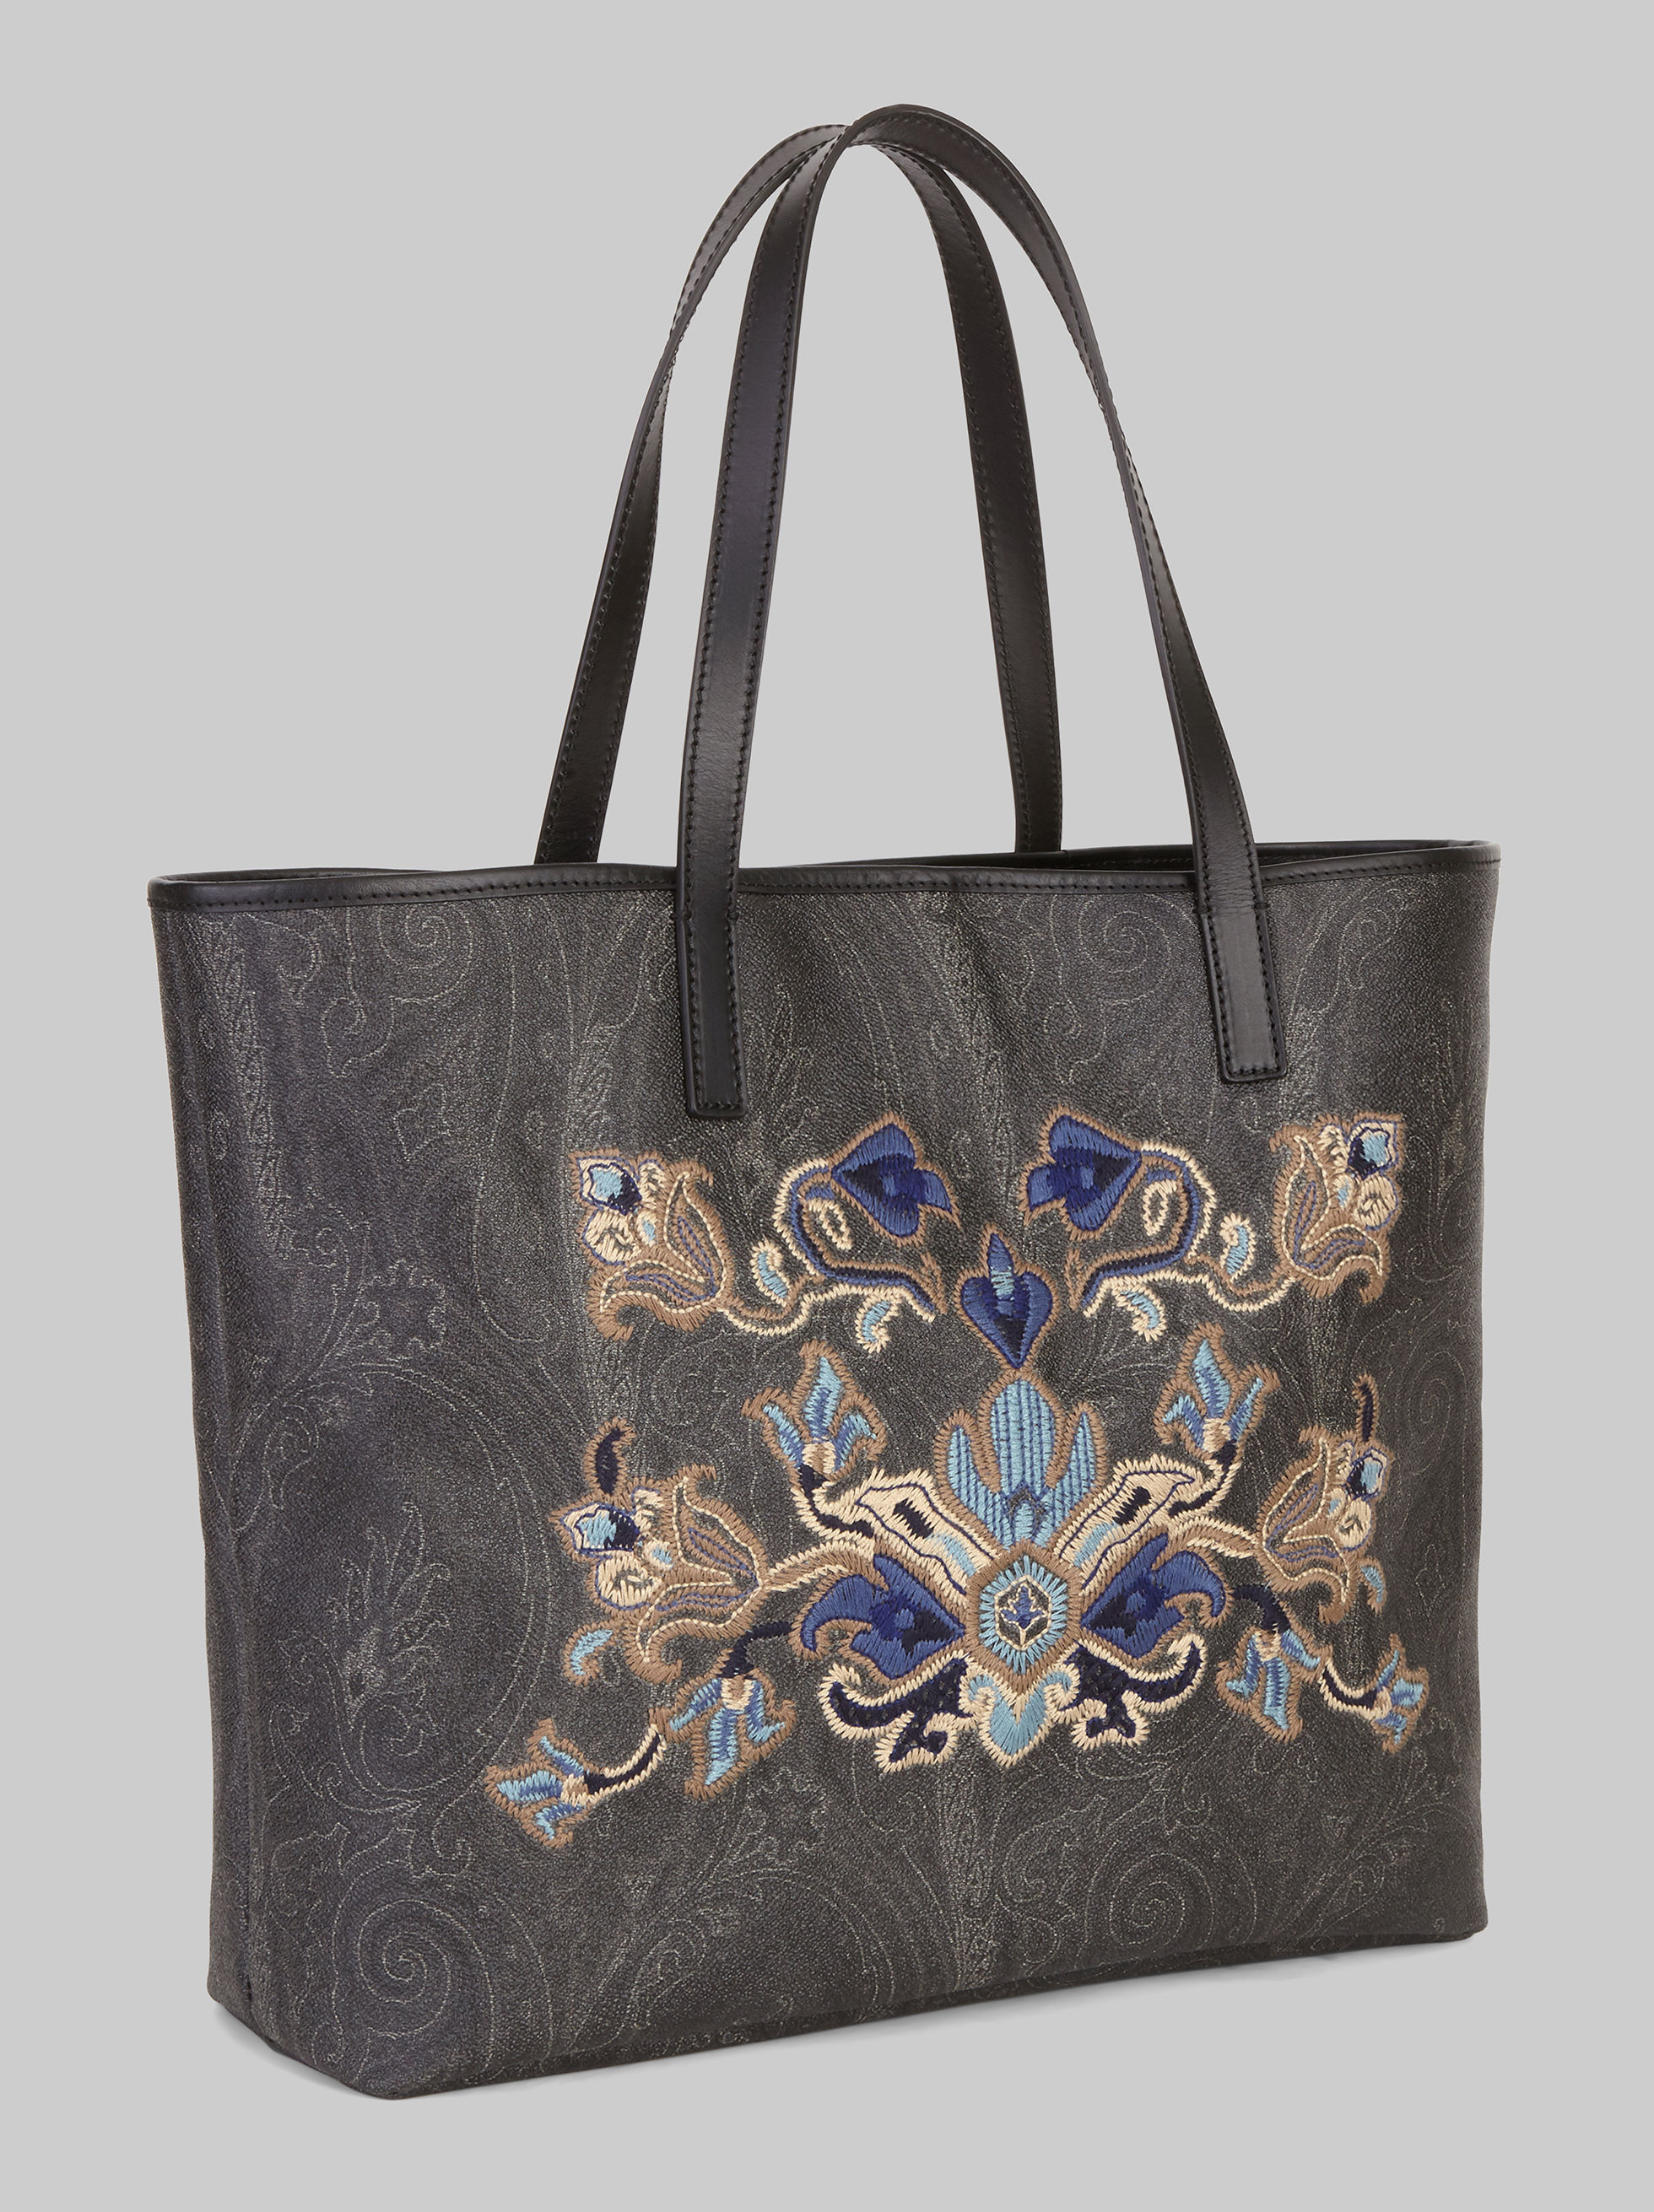 SHOPPER BAG WITH EMBROIDERY